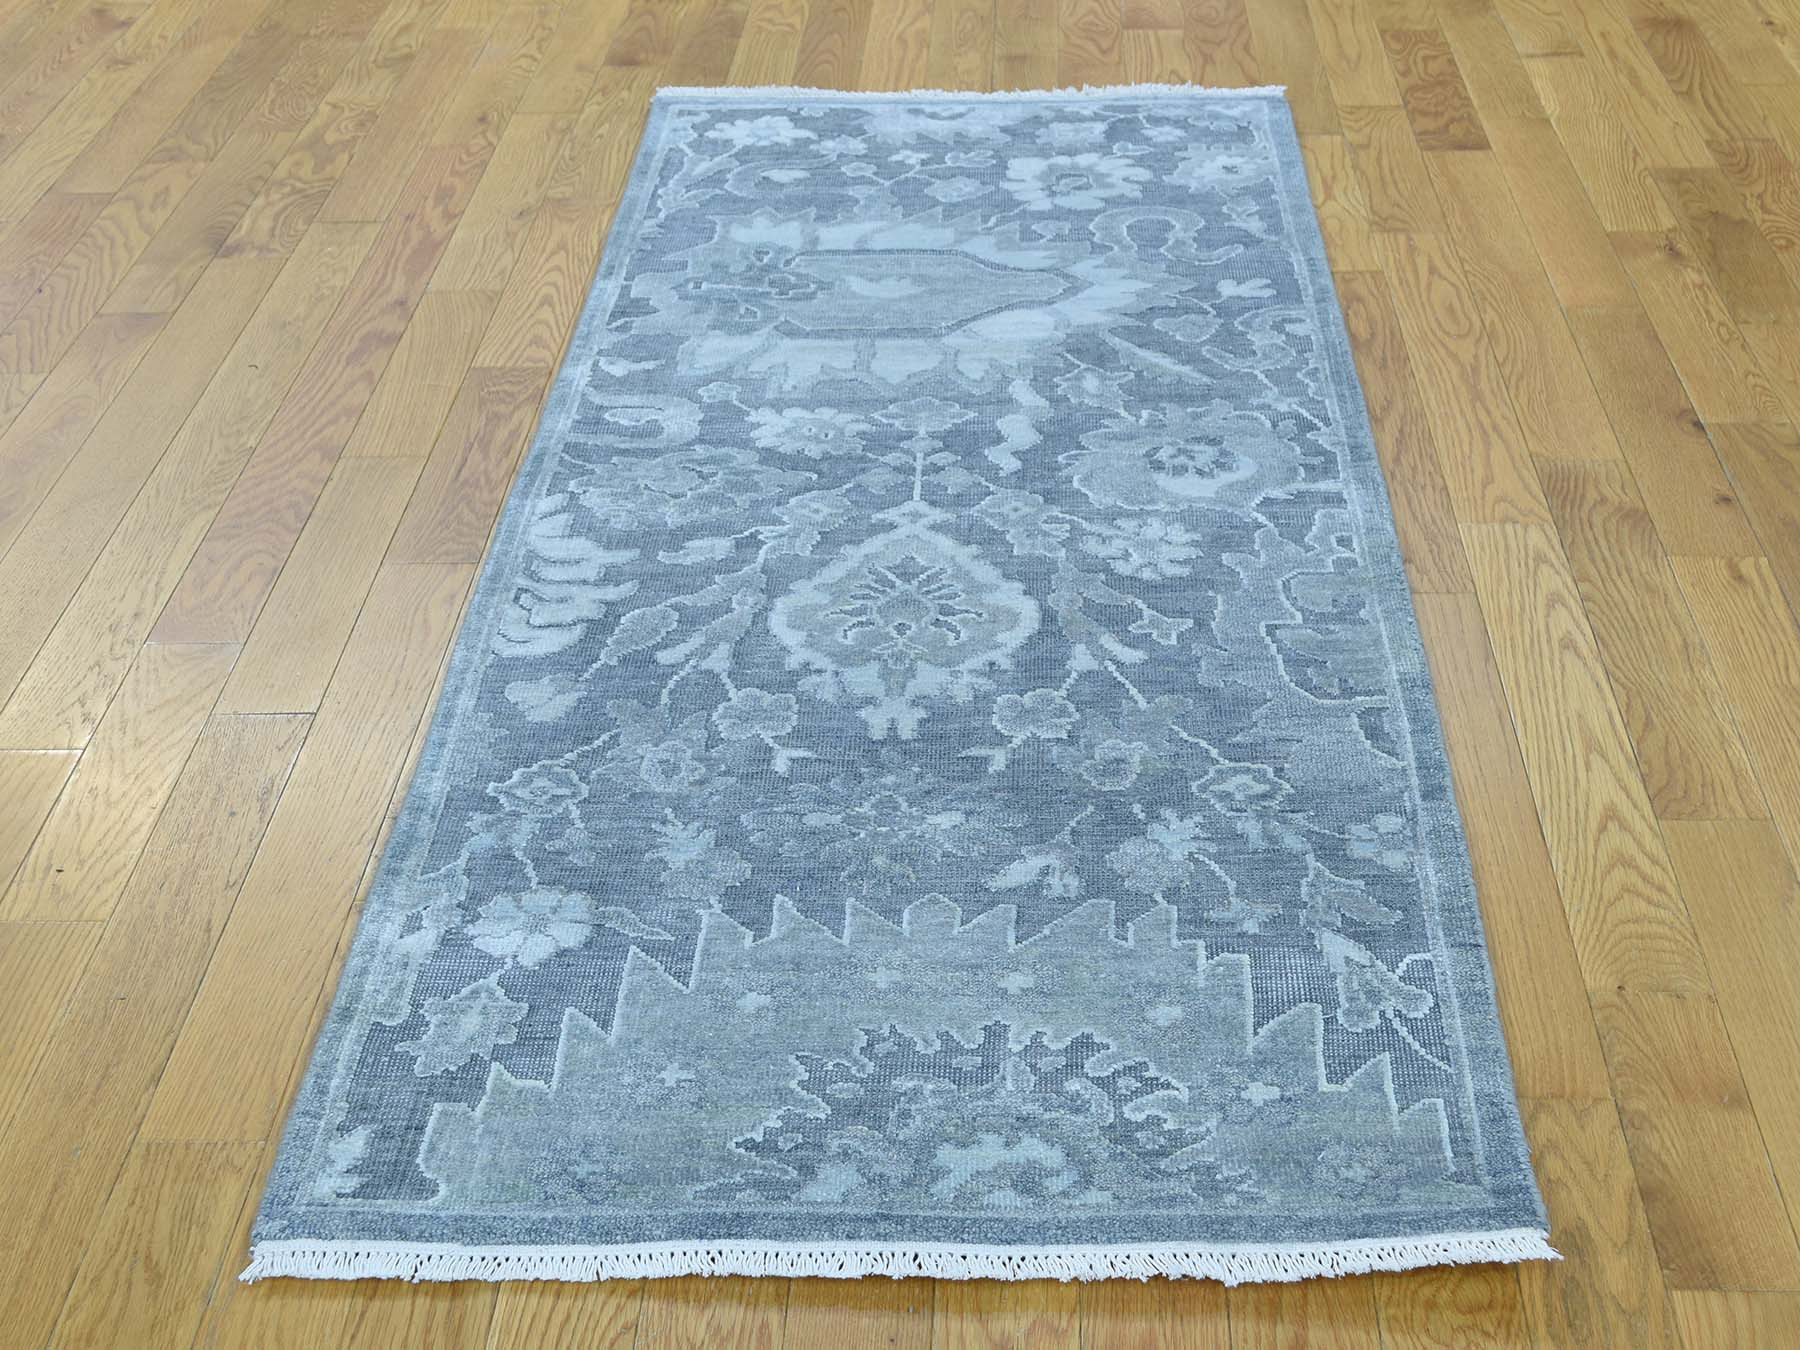 Traditional Silk Hand-Knotted Area Rug 2'5